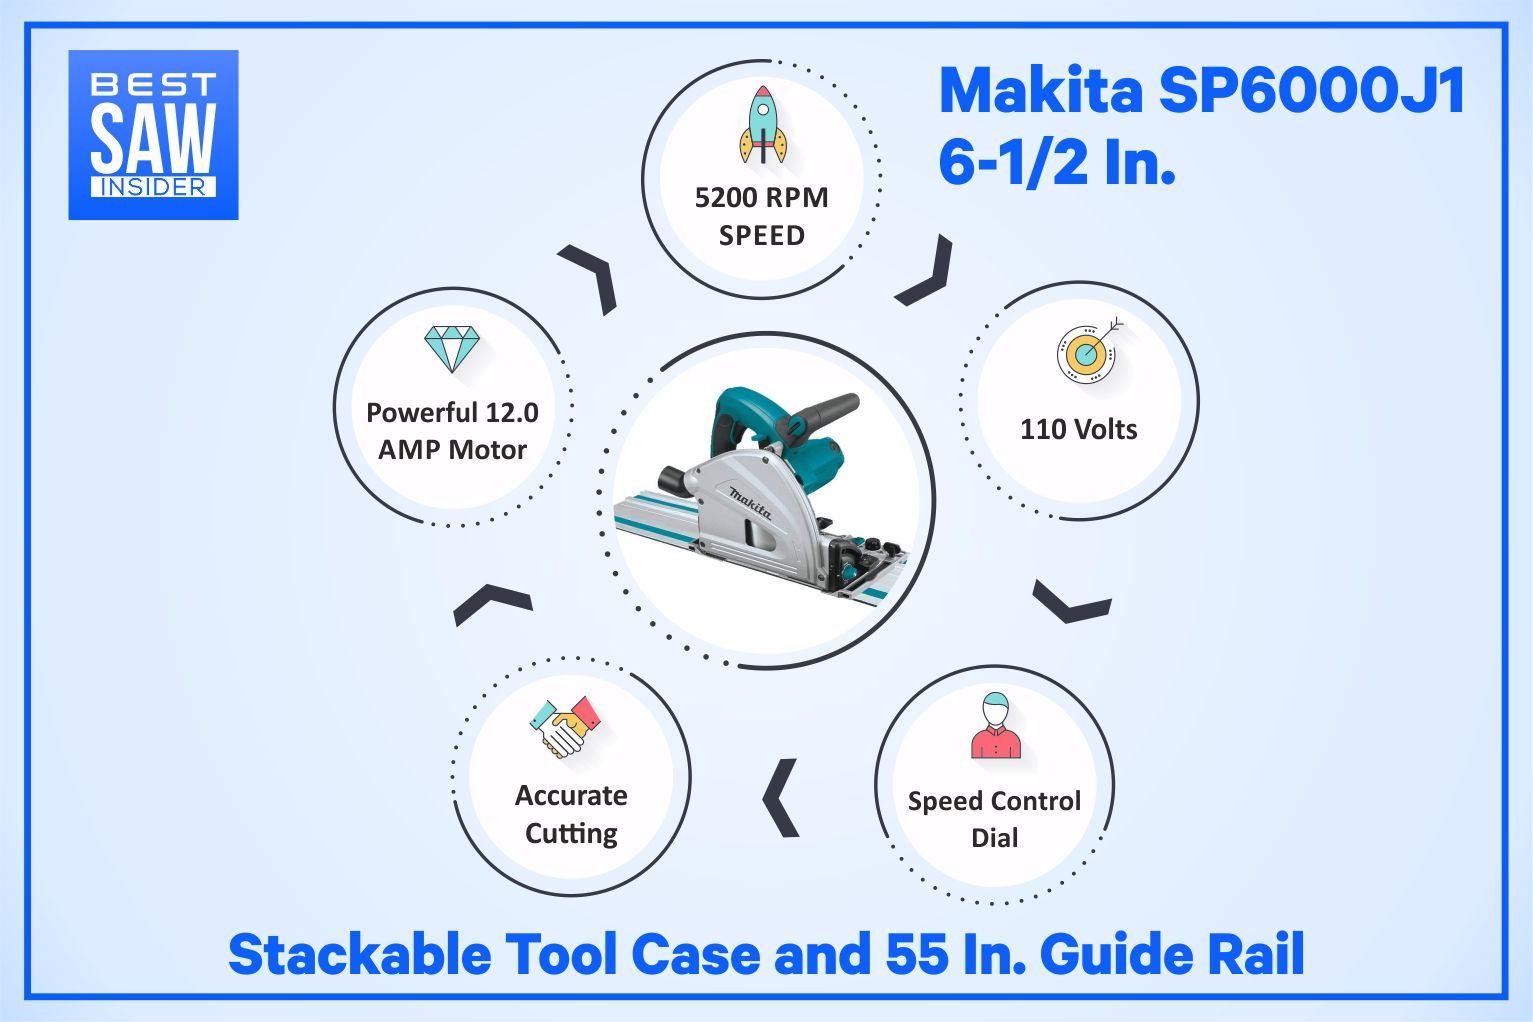 Makita SP6000J1 Plunge - Best Track Saw for DIY infographic